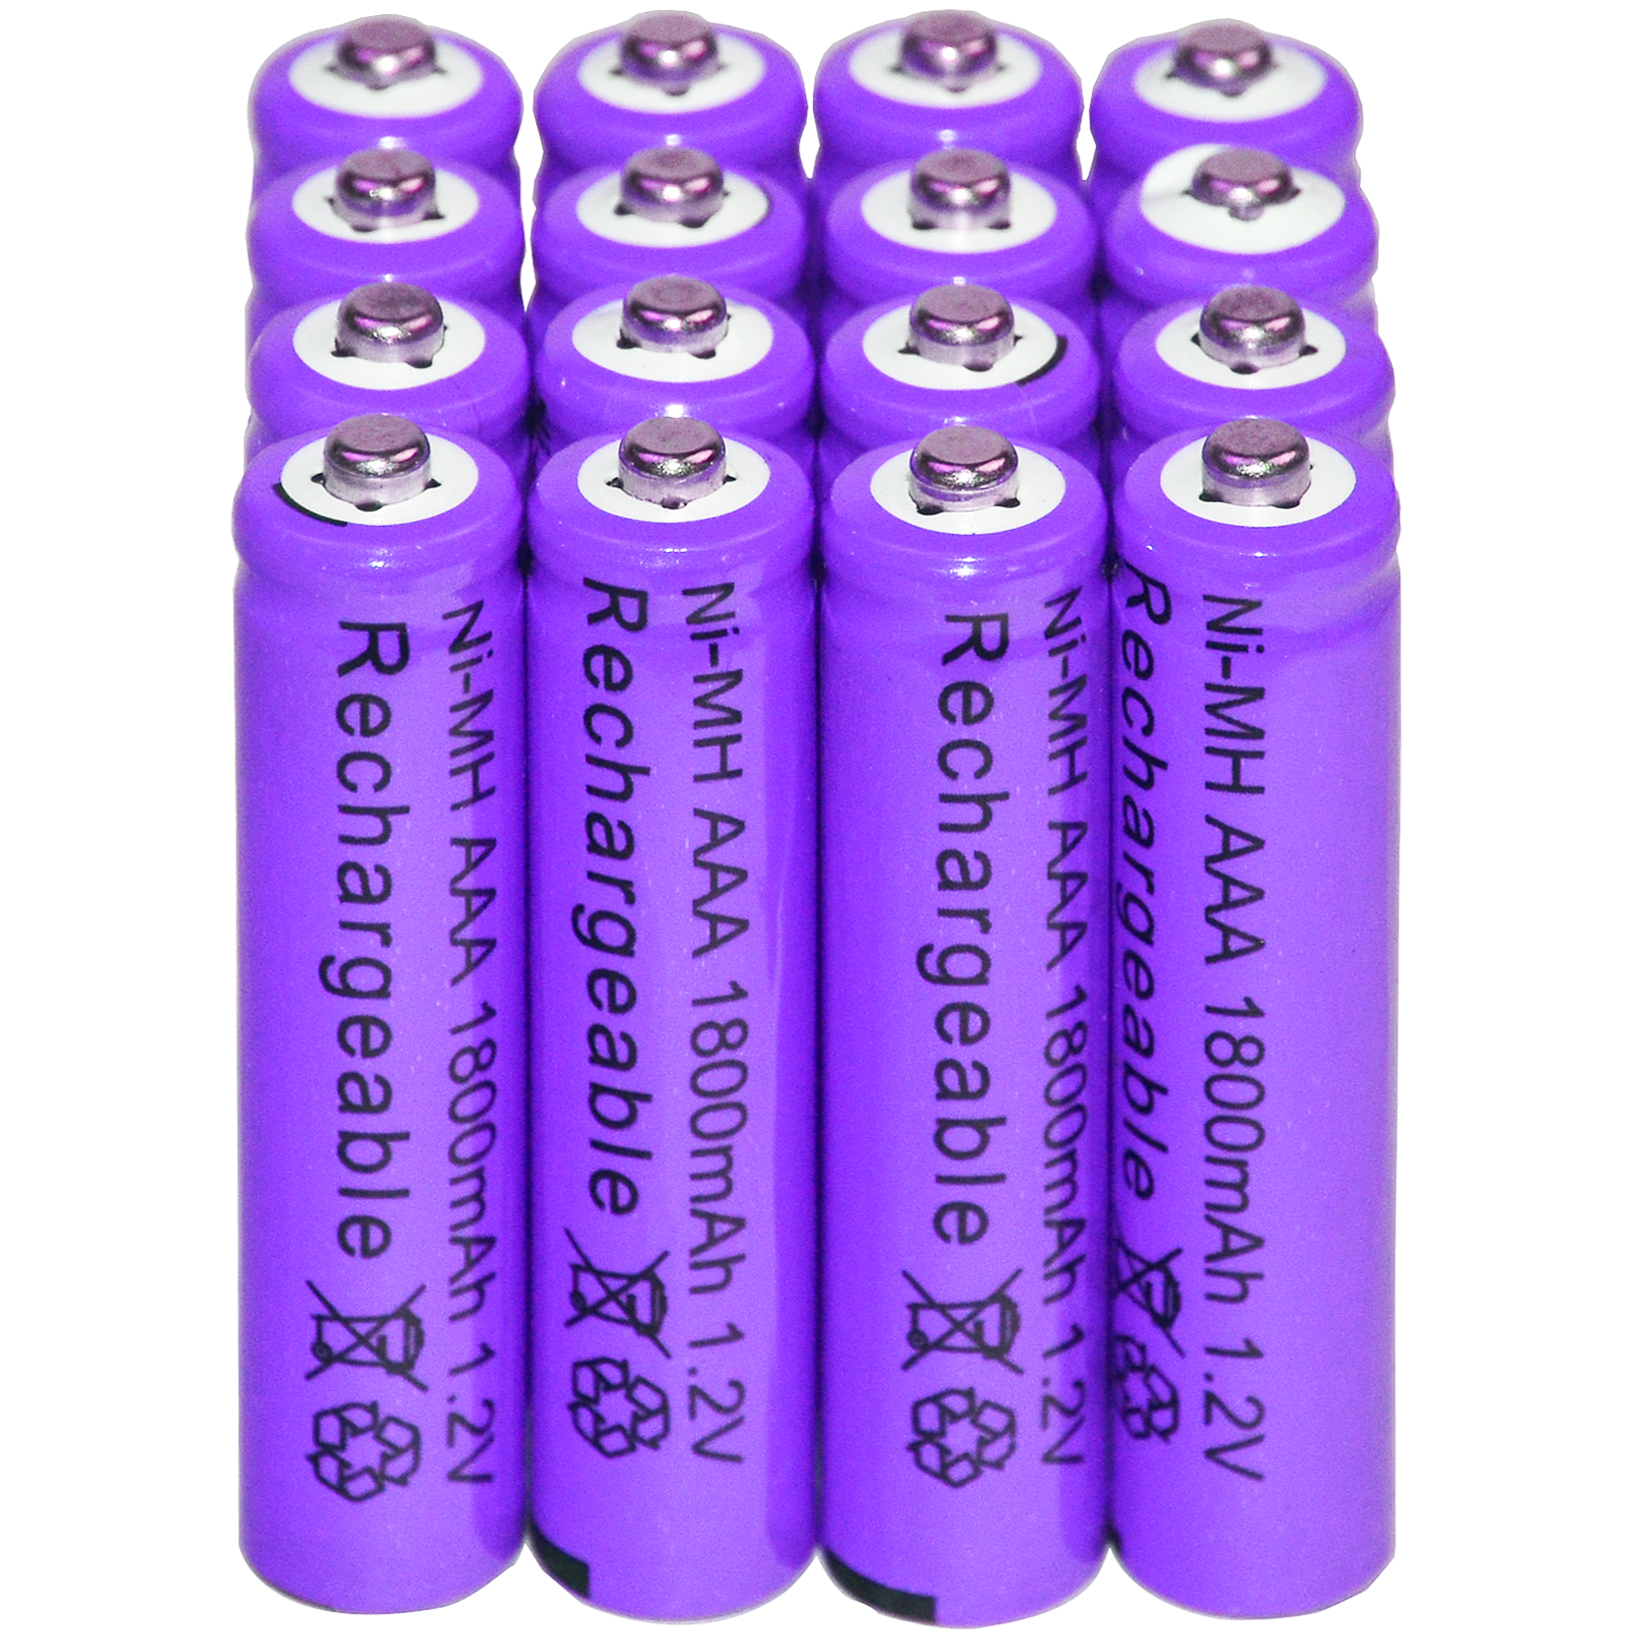 2/12/16/20/28/32pcs AAA 1800mAh 3A 1.2 V Ni-MH Purple Rechargeable Battery Cell for MP3 RC Toys 1 4pcs aaa rechargeable battery pack 4 8v 600mah 3a ni mh nimh batteries ni mh cell for rc toys emergency light cordless phone